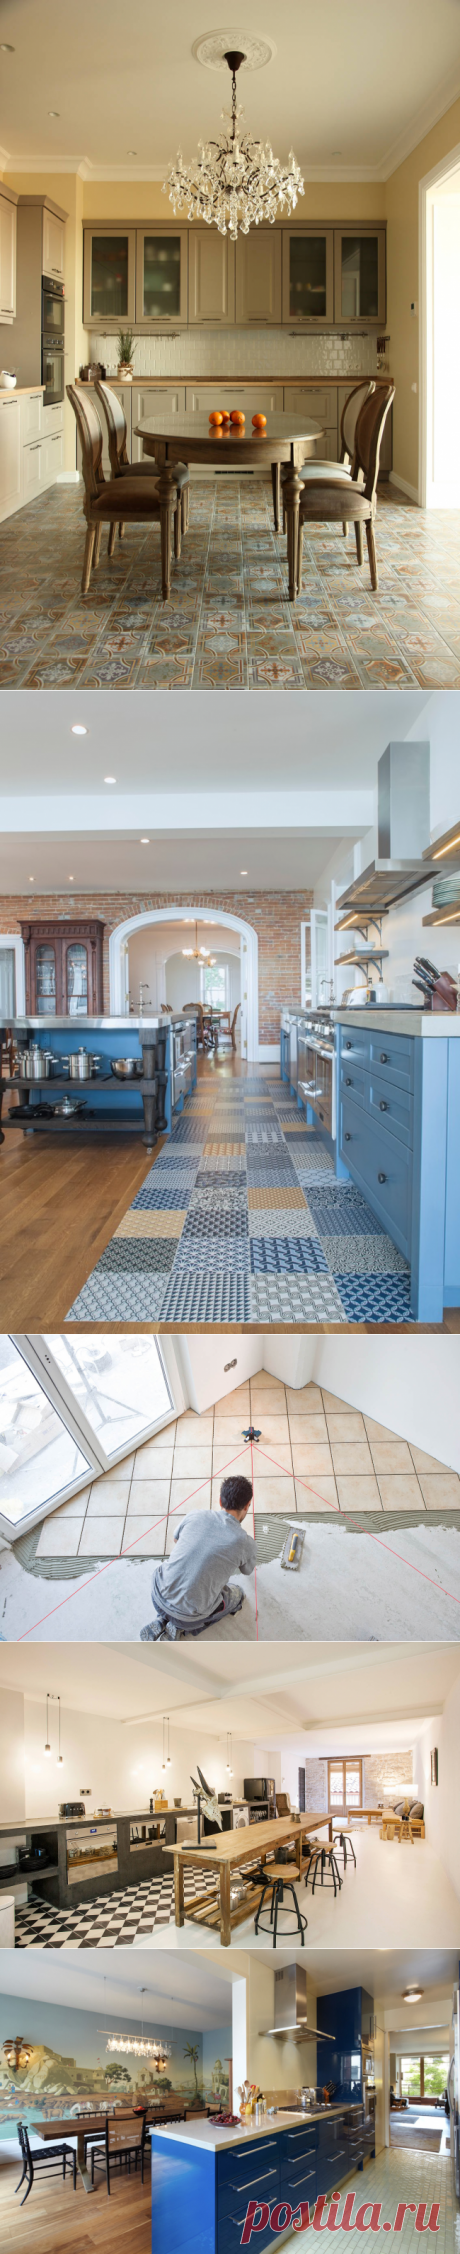 The choice of a tile for a kitchen floor | Luxury and a cosiness